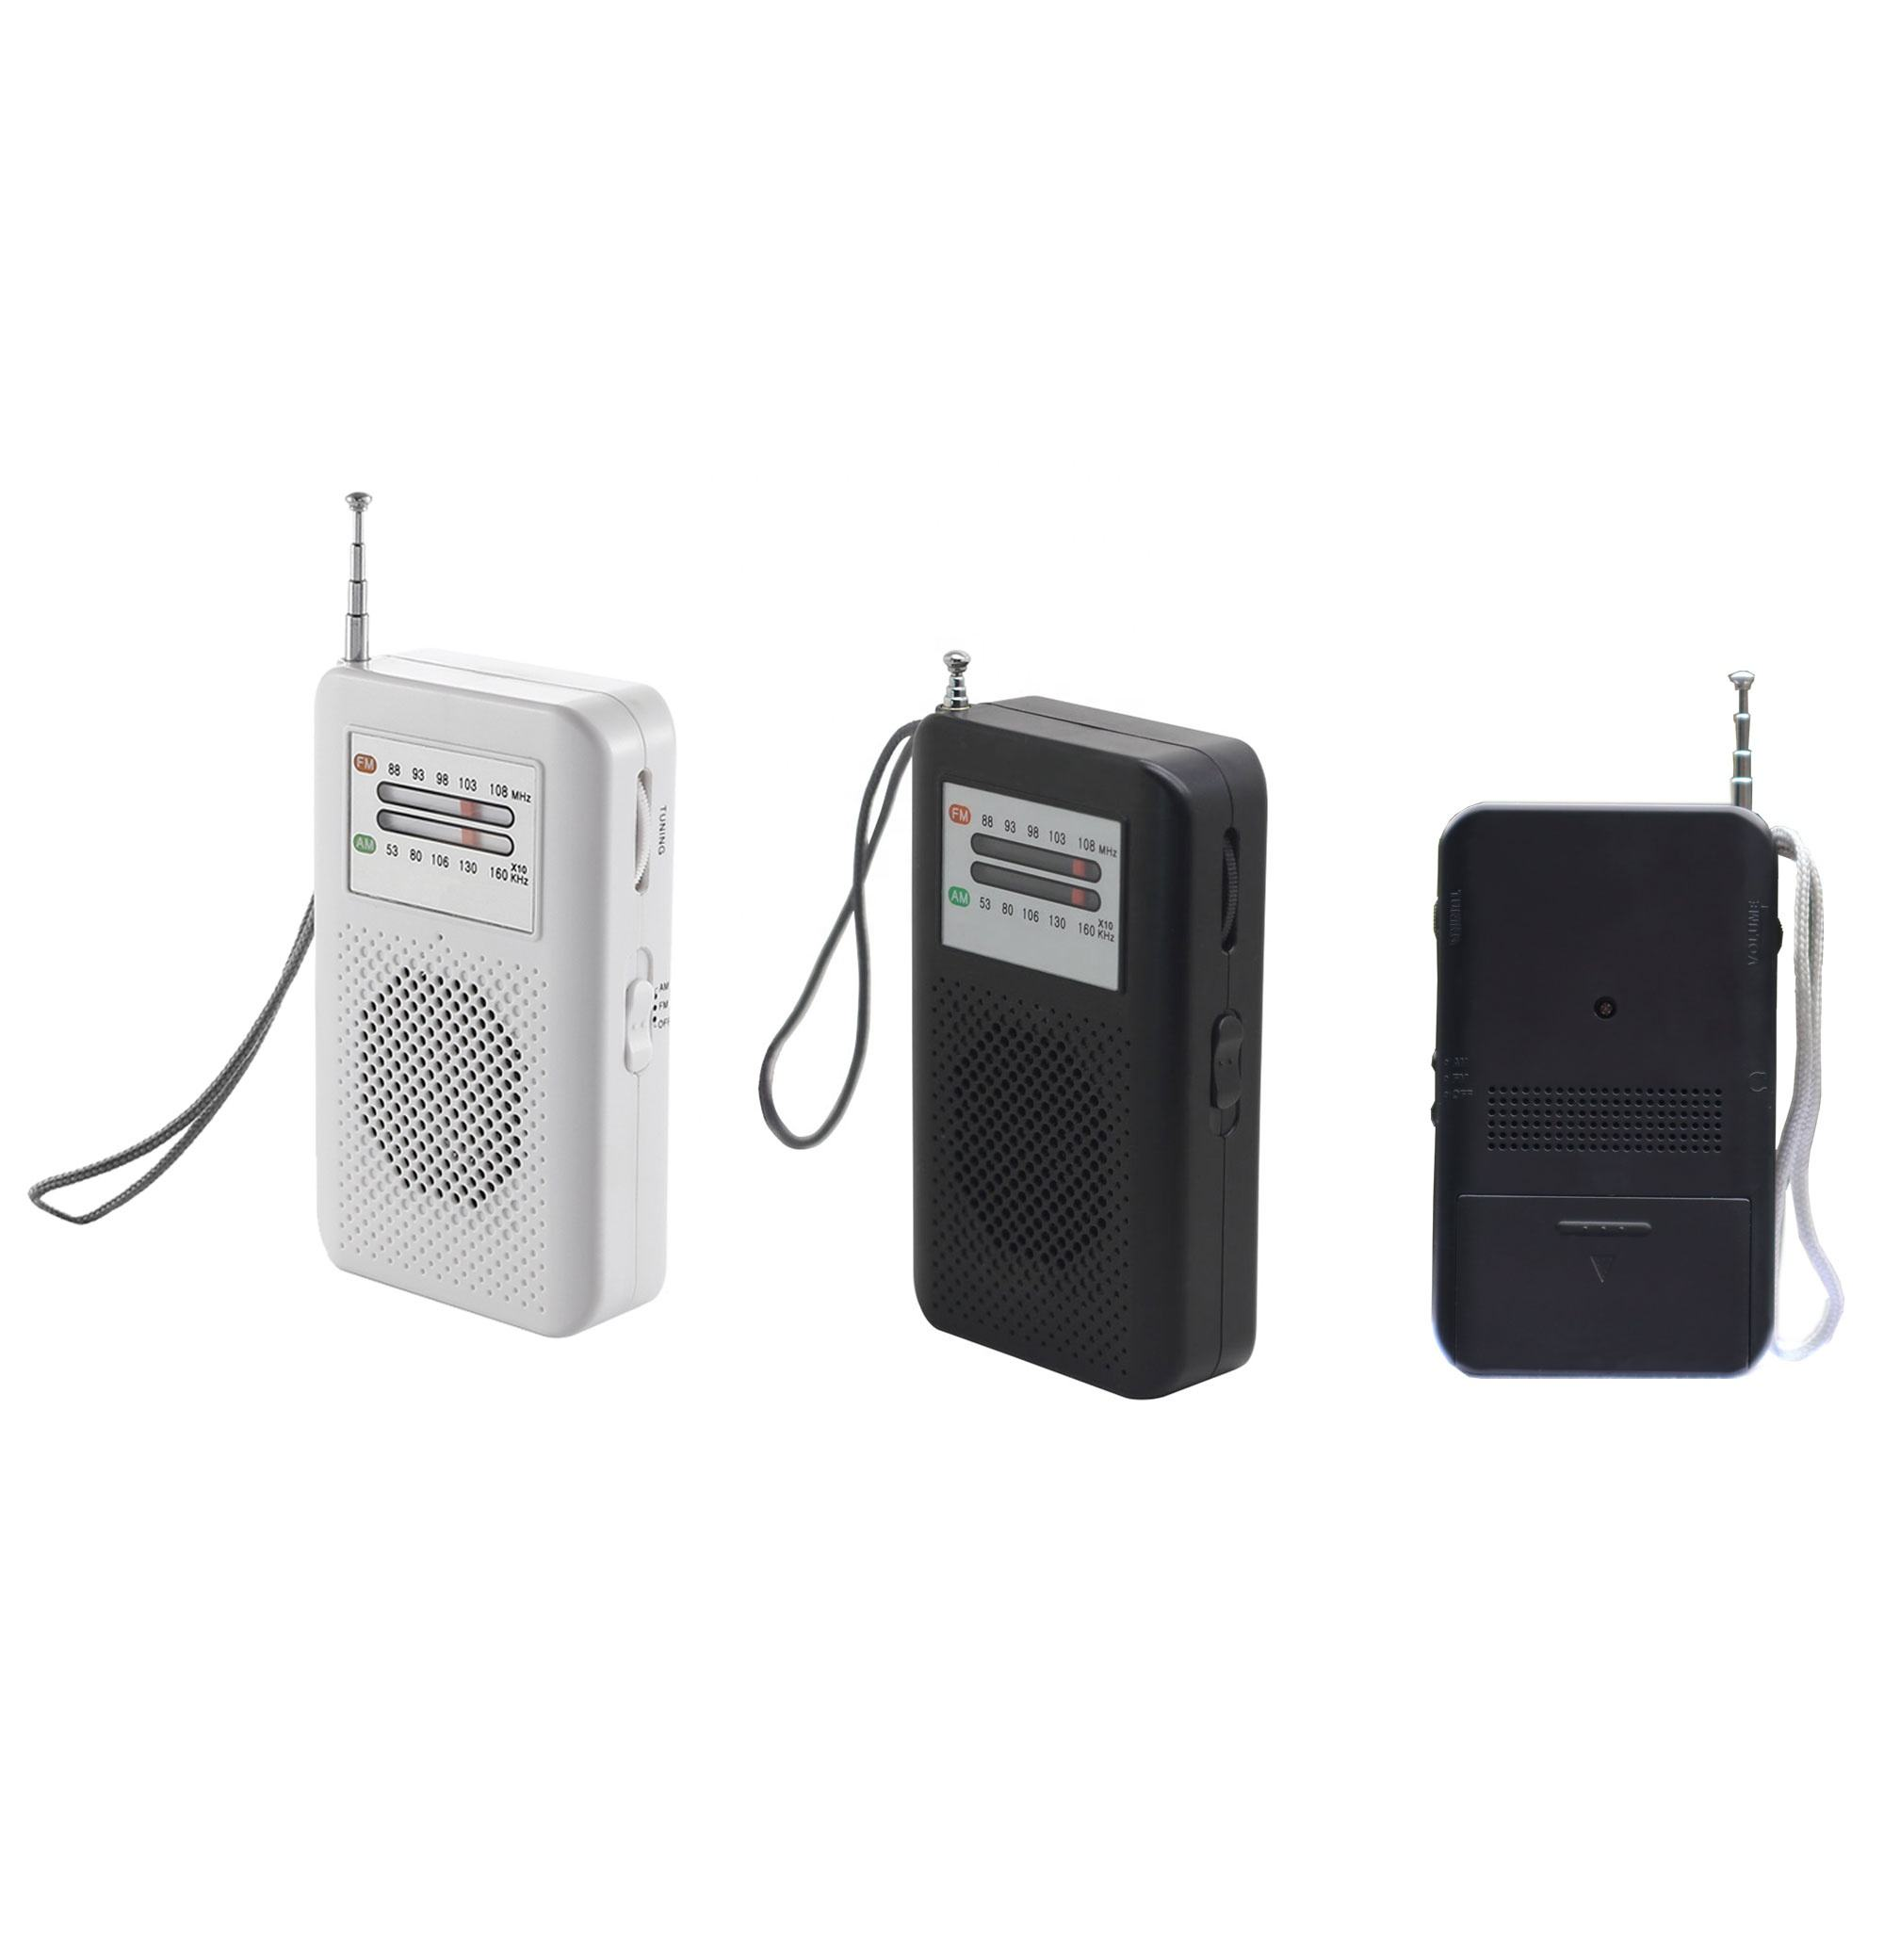 Mini Portable pocket radio am fm receiver home radio